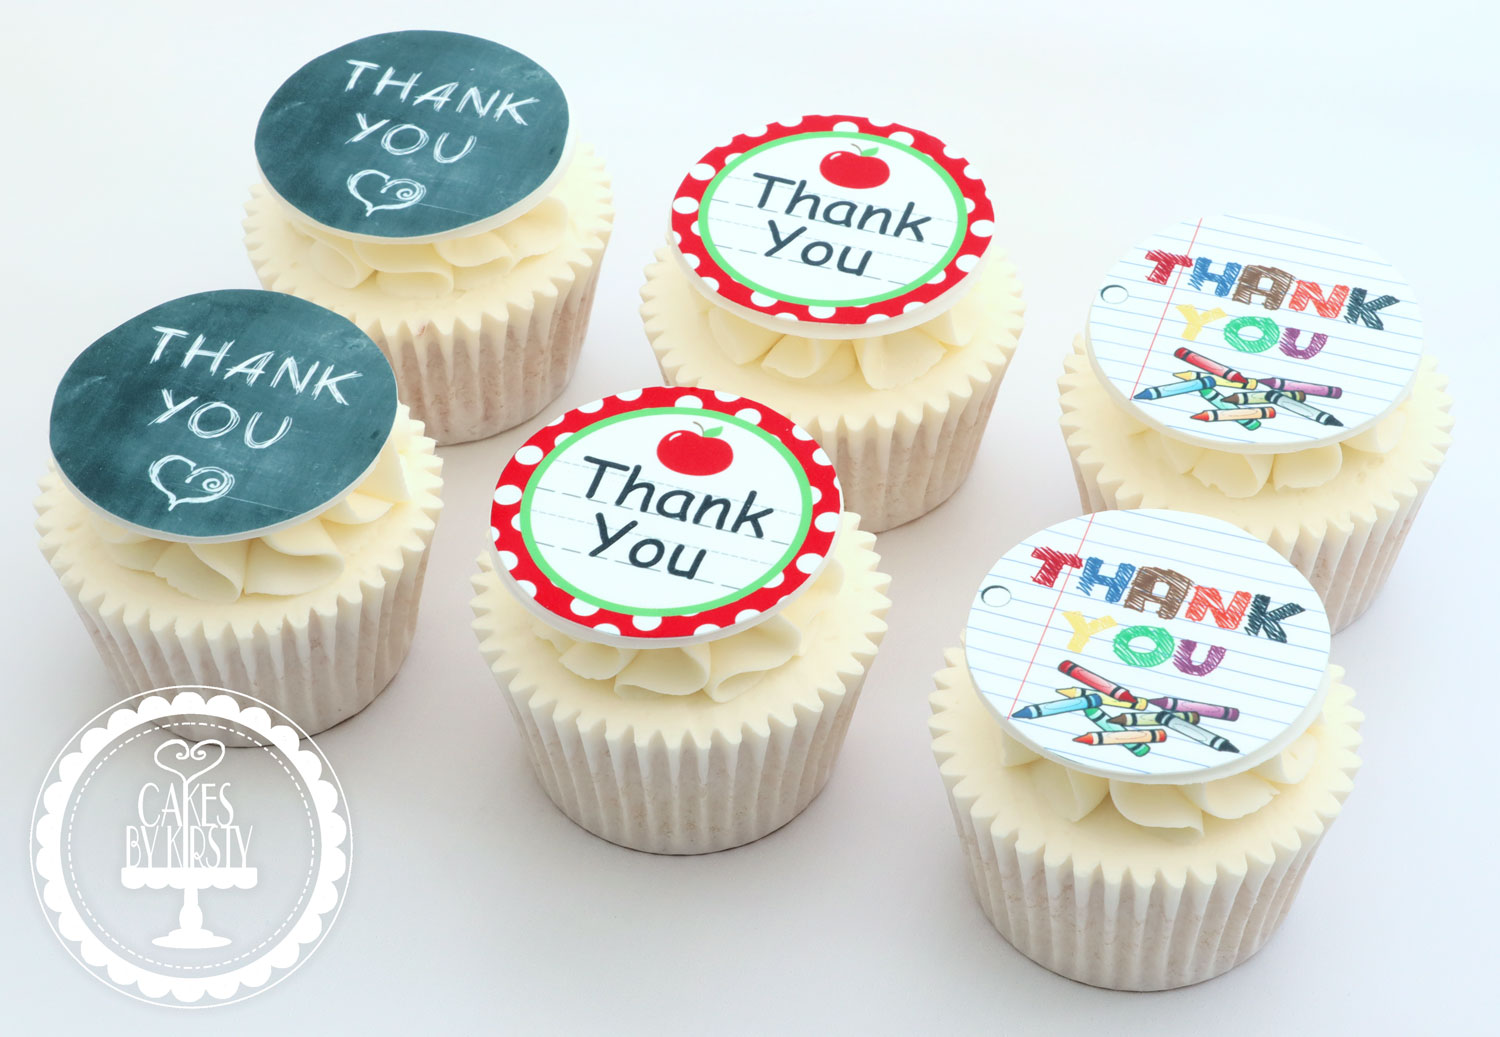 20200716 - Thank You Teacher Cupcakes